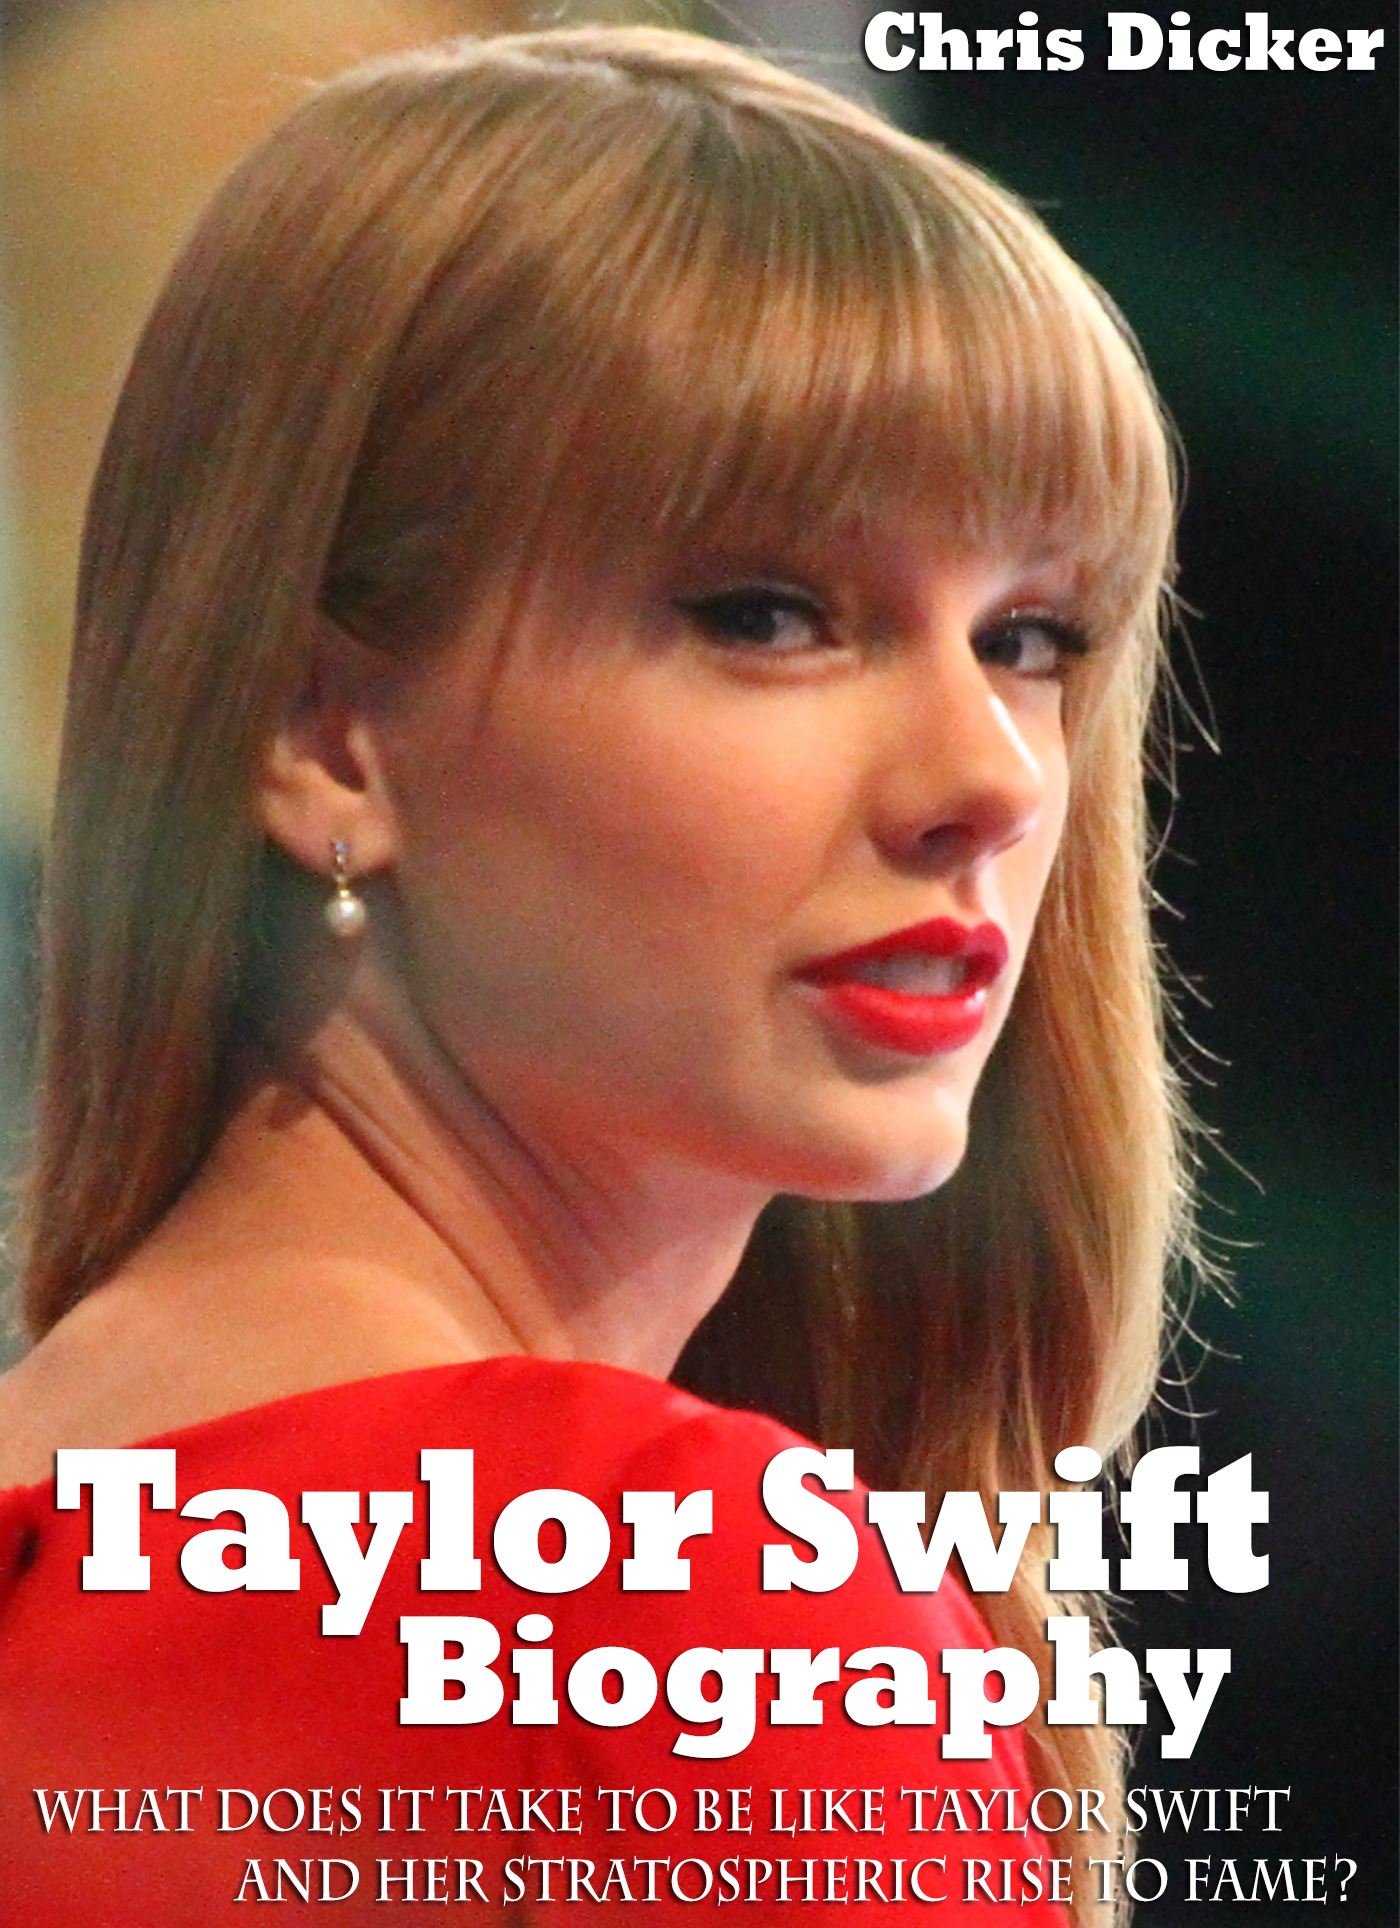 Smashwords Taylor Swift Biography What Does It Take To Be Like Taylor Swift And Her Stratospheric Rise To Fame A Book By Chris Dicker